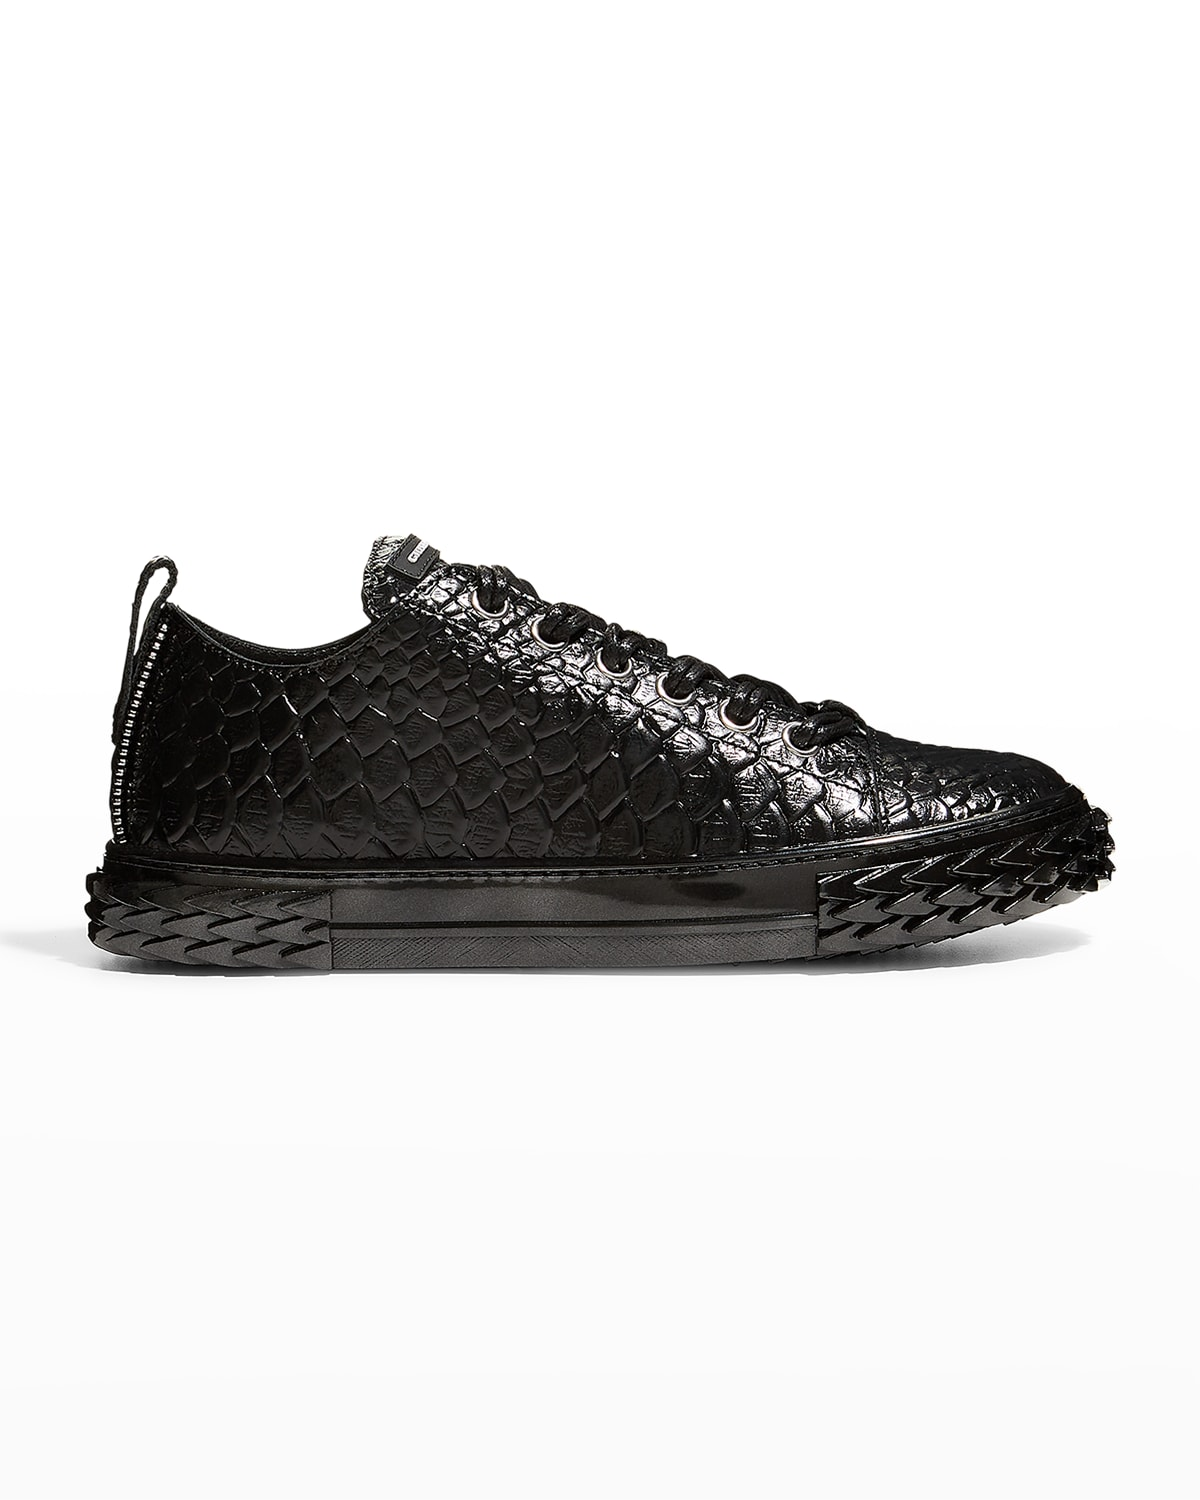 Men's Granch Blabber Patent Scales Low-Top Sneakers